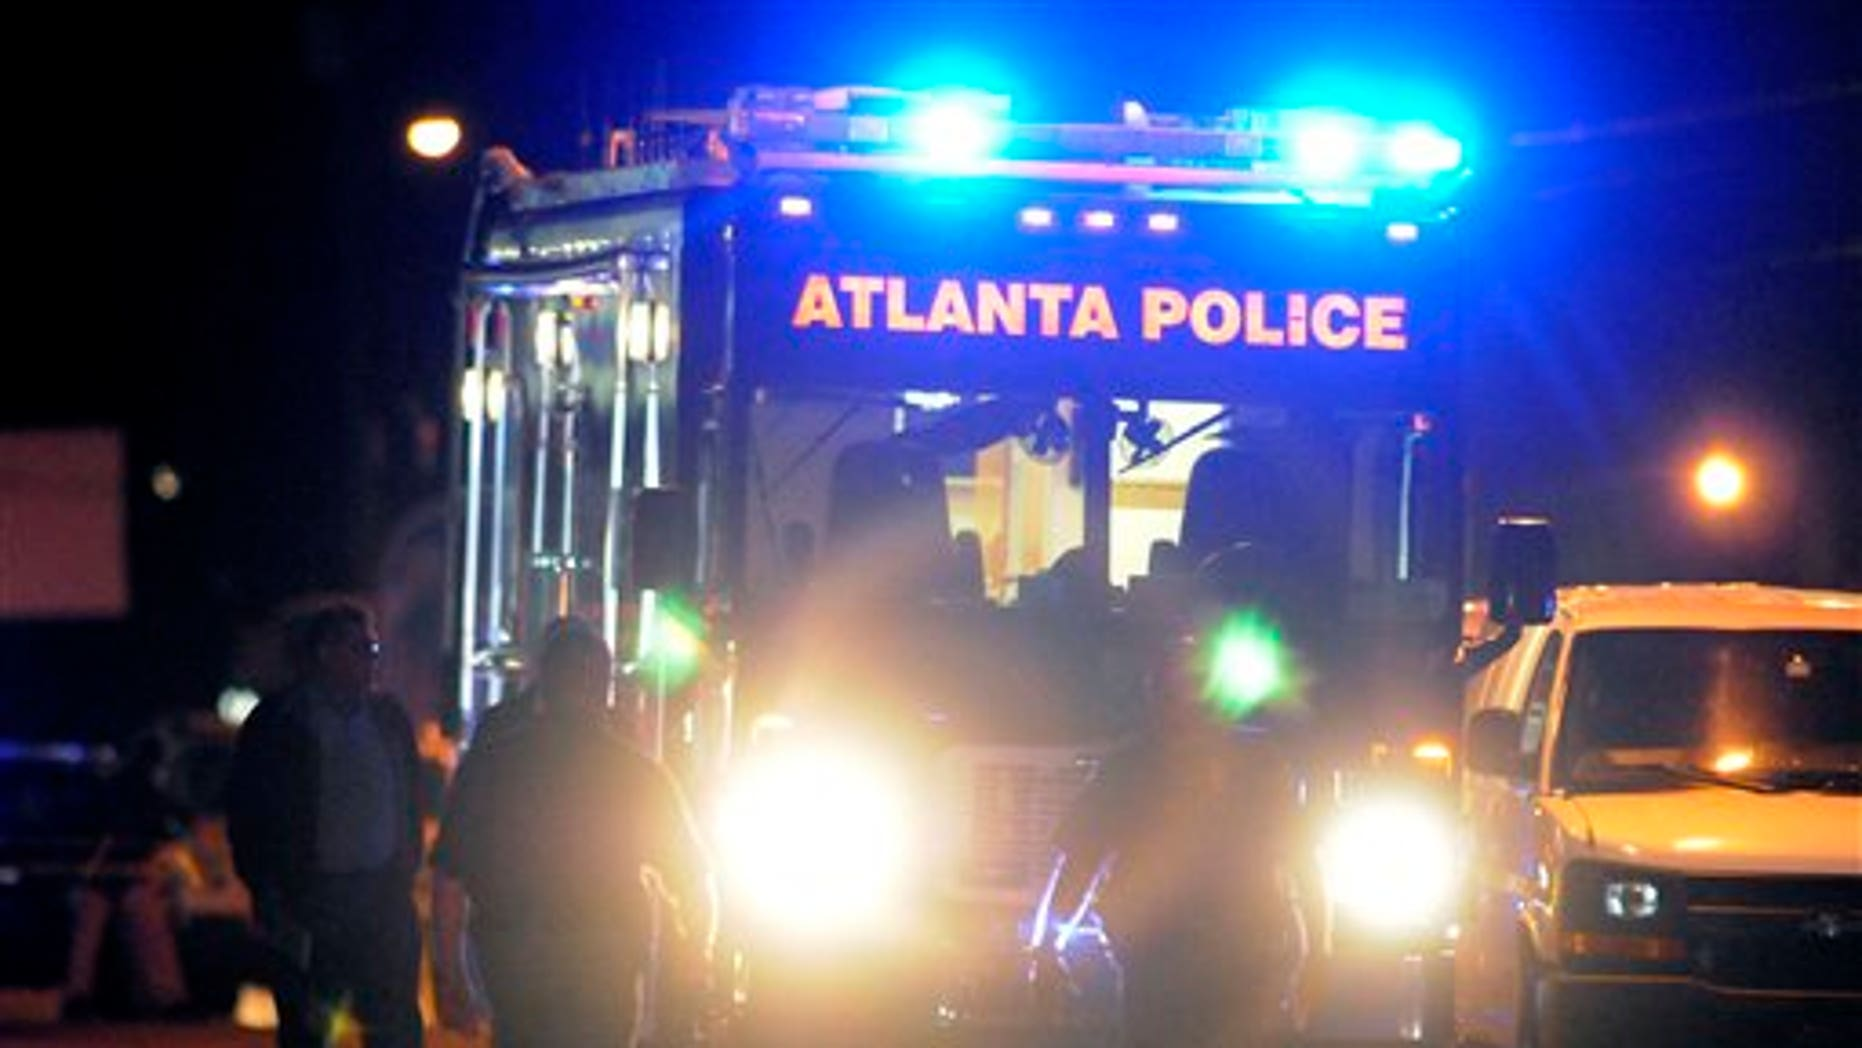 Nov. 4, 2012: Law enforcement personnel investigate the scene of an Atlanta Police Department helicopter crash.